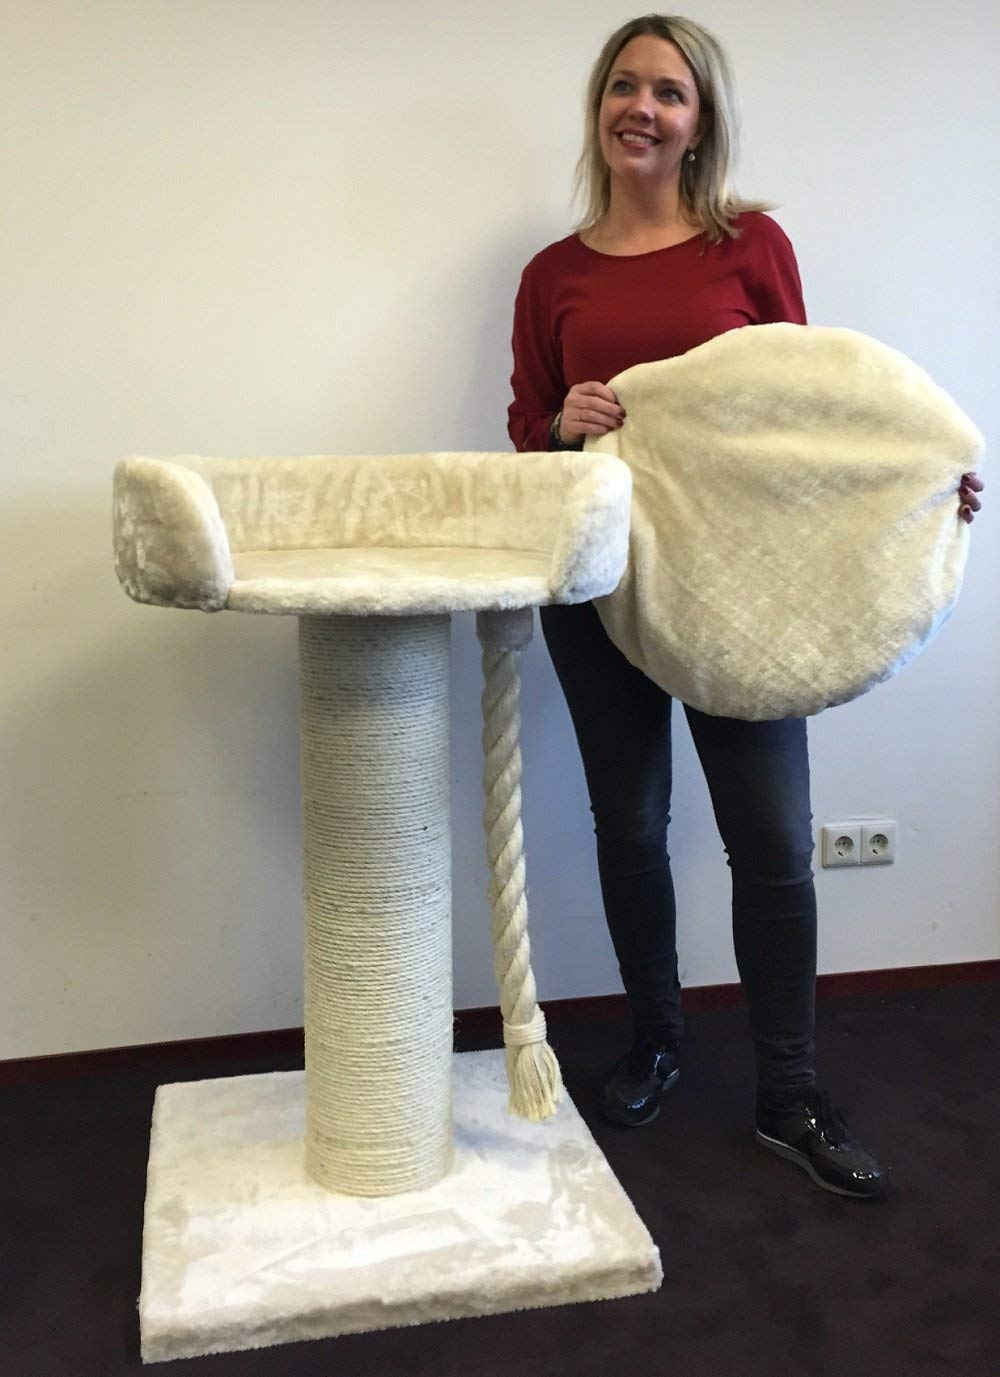 Queensplace XXL Beige Cat Tree for Large Cats www.puppyurl.com